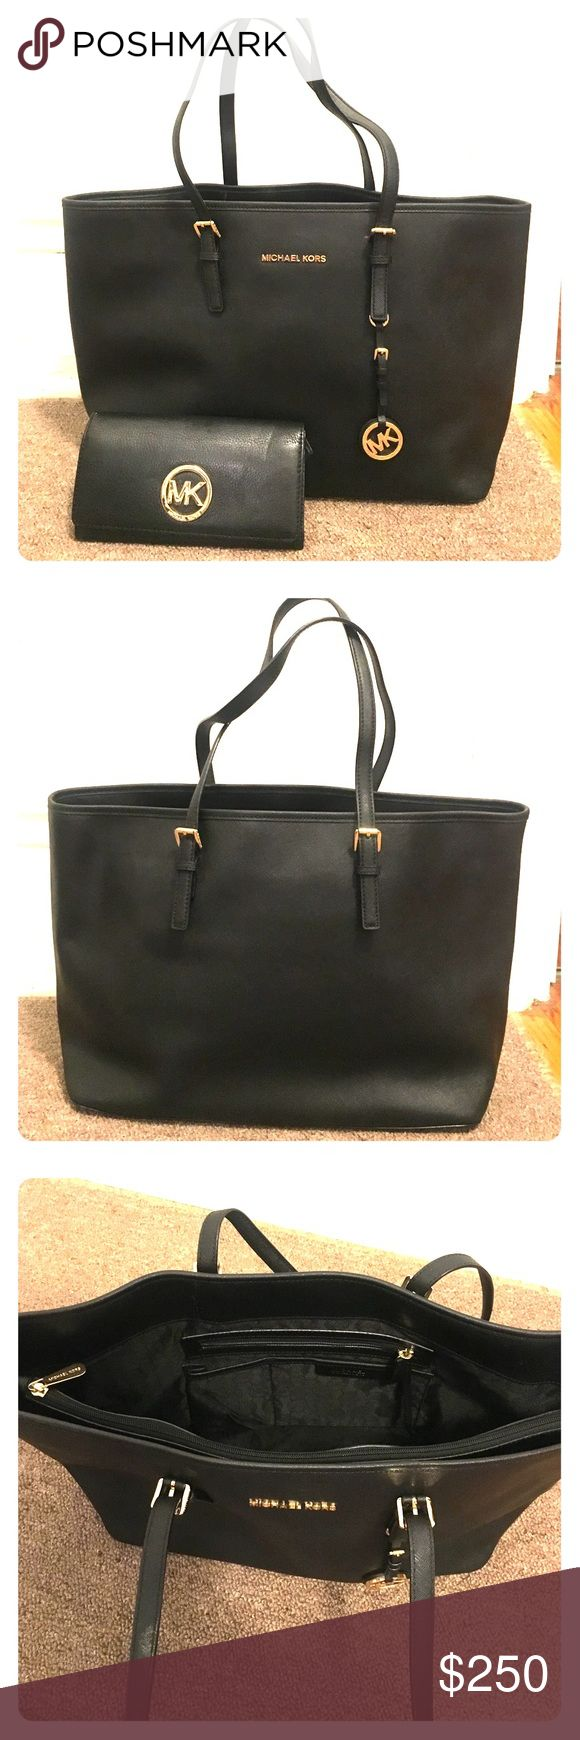 Michael Kors Jet Set Travel Med Saffiano Lthr Tote MK Jet Set Travel Medium Leather Tote with inside divider. Color- Black. Amazing Condition! Only used 2 times. Also including a MK Fulton Leather Carryall Wallet (retail price of $148.00 separate from bag price) with purchase of tote (both together would normally retail at $446 before tax). Comes with original duster bag. Michael Kors Bags Totes